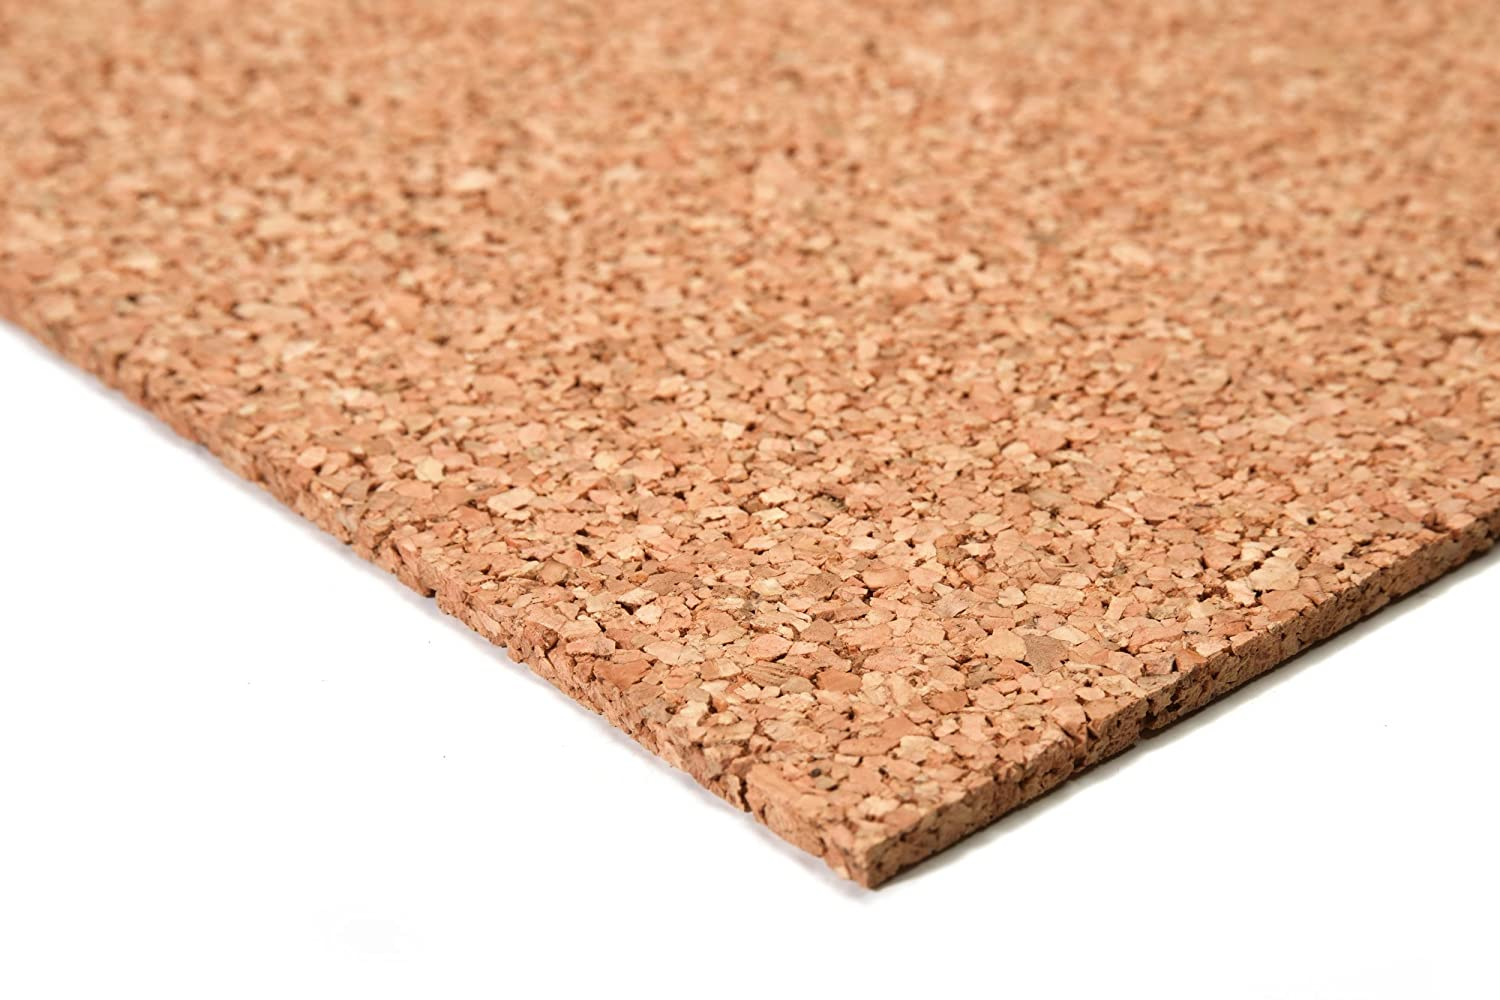 High quality cork board 100x300cm, 5mm ✓ Elastic ✓ Non-polluting ✓ Antistatic | Suitable as Bulletin board, Acoustic insulation for floors, Thermal insulation, Wall decor acerto